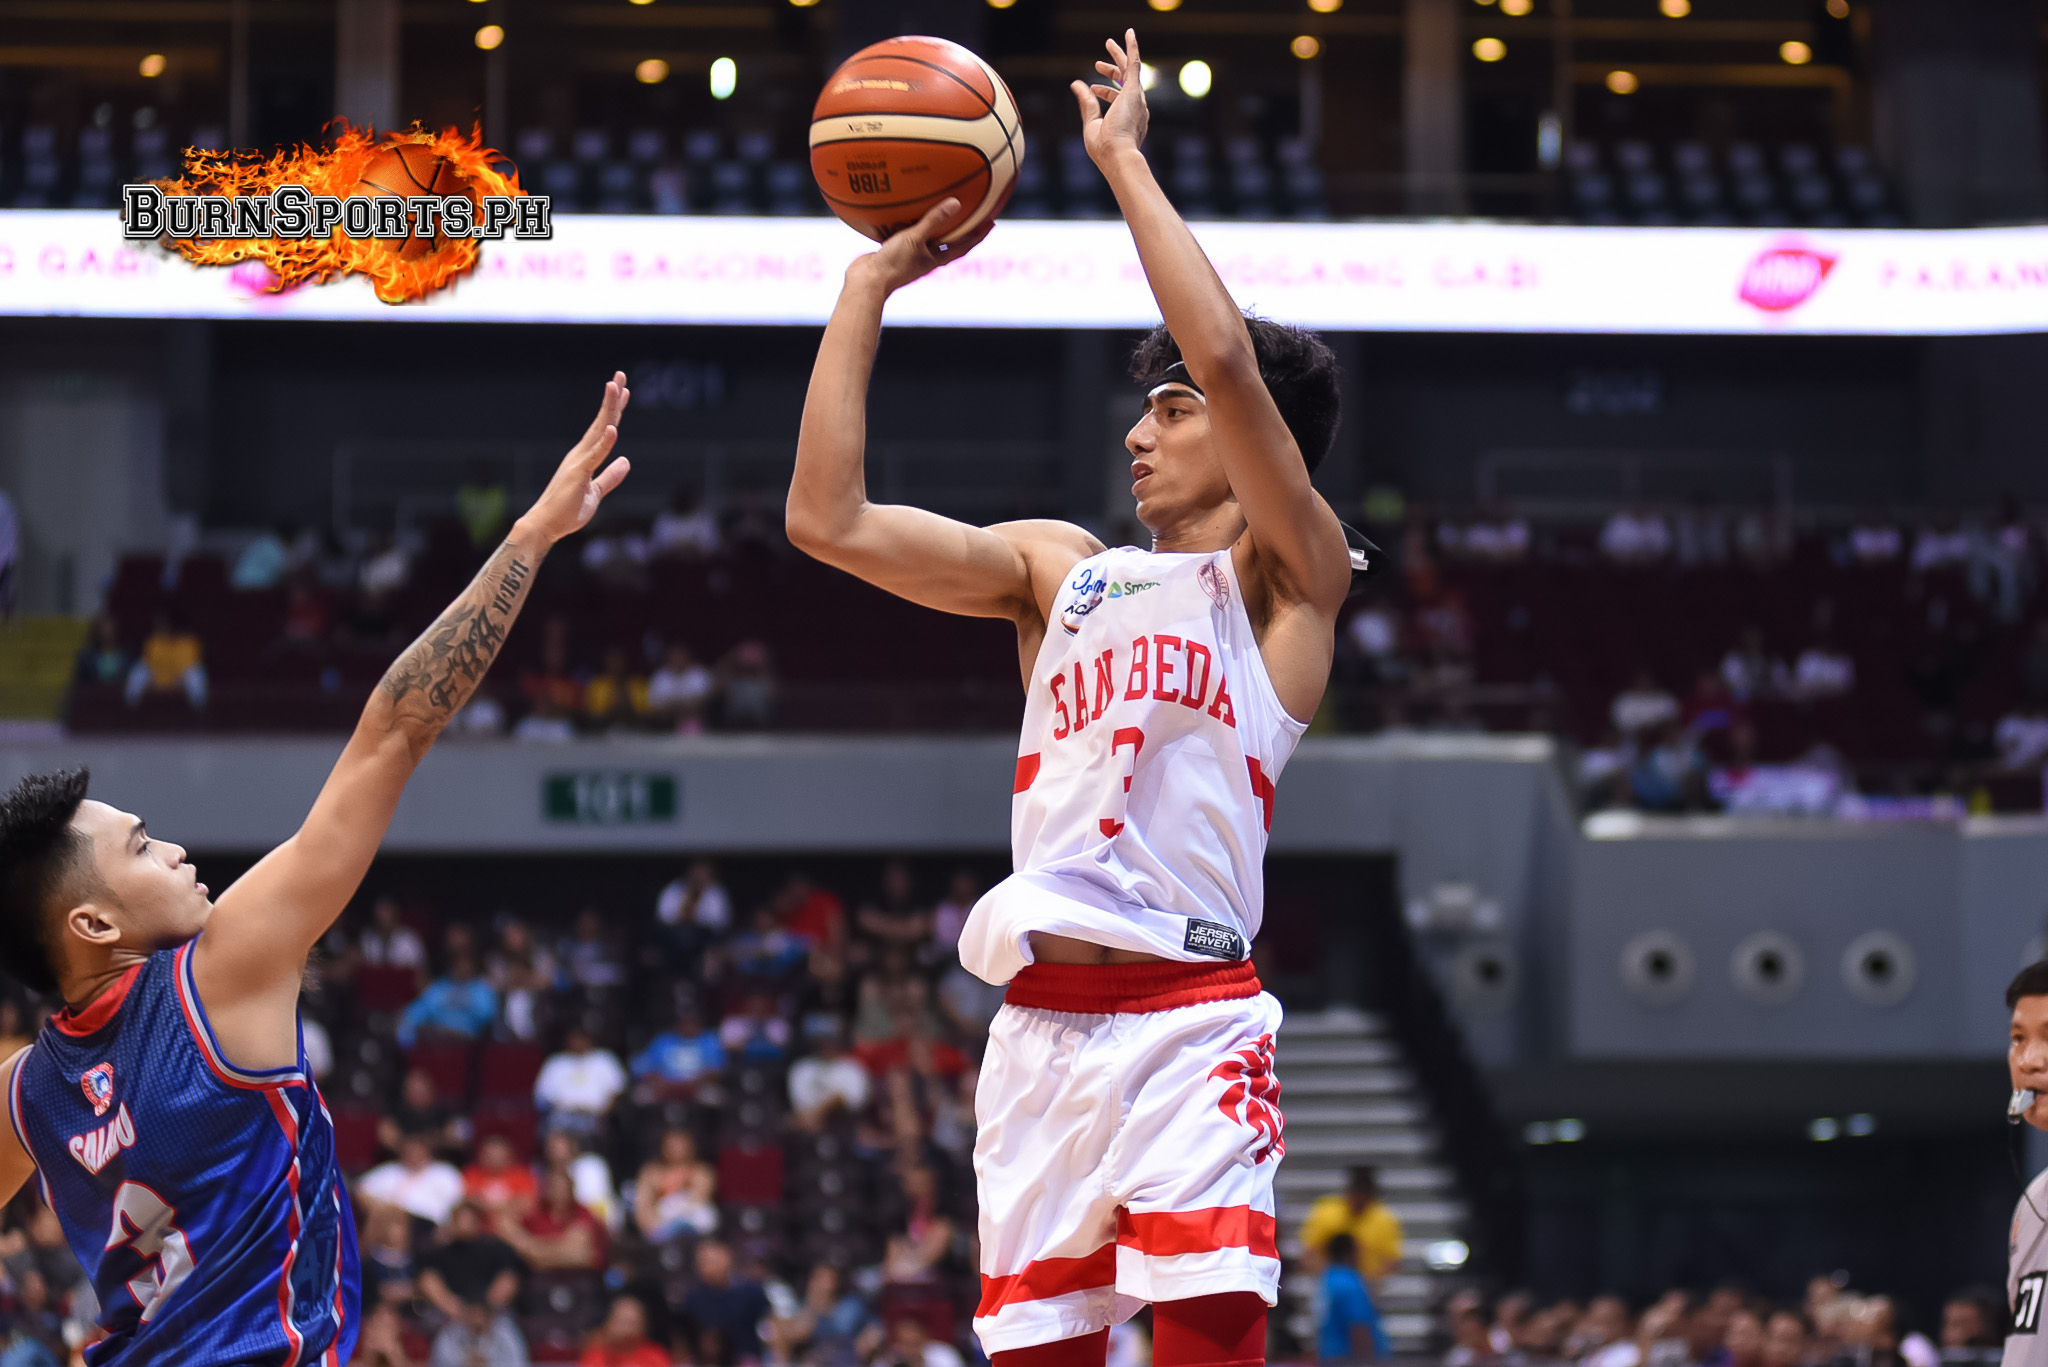 San Beda begins four-peat bid with a win over Arellano